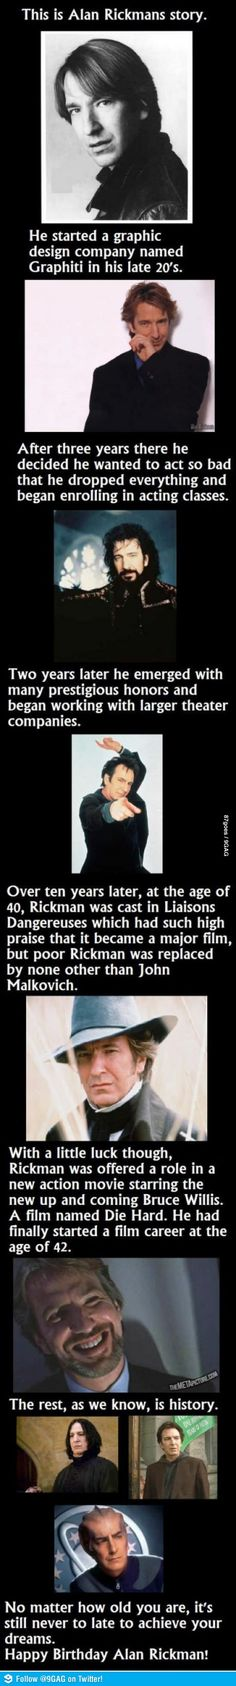 This is Alan Rickman's story. I can't believe he is 67 years old.